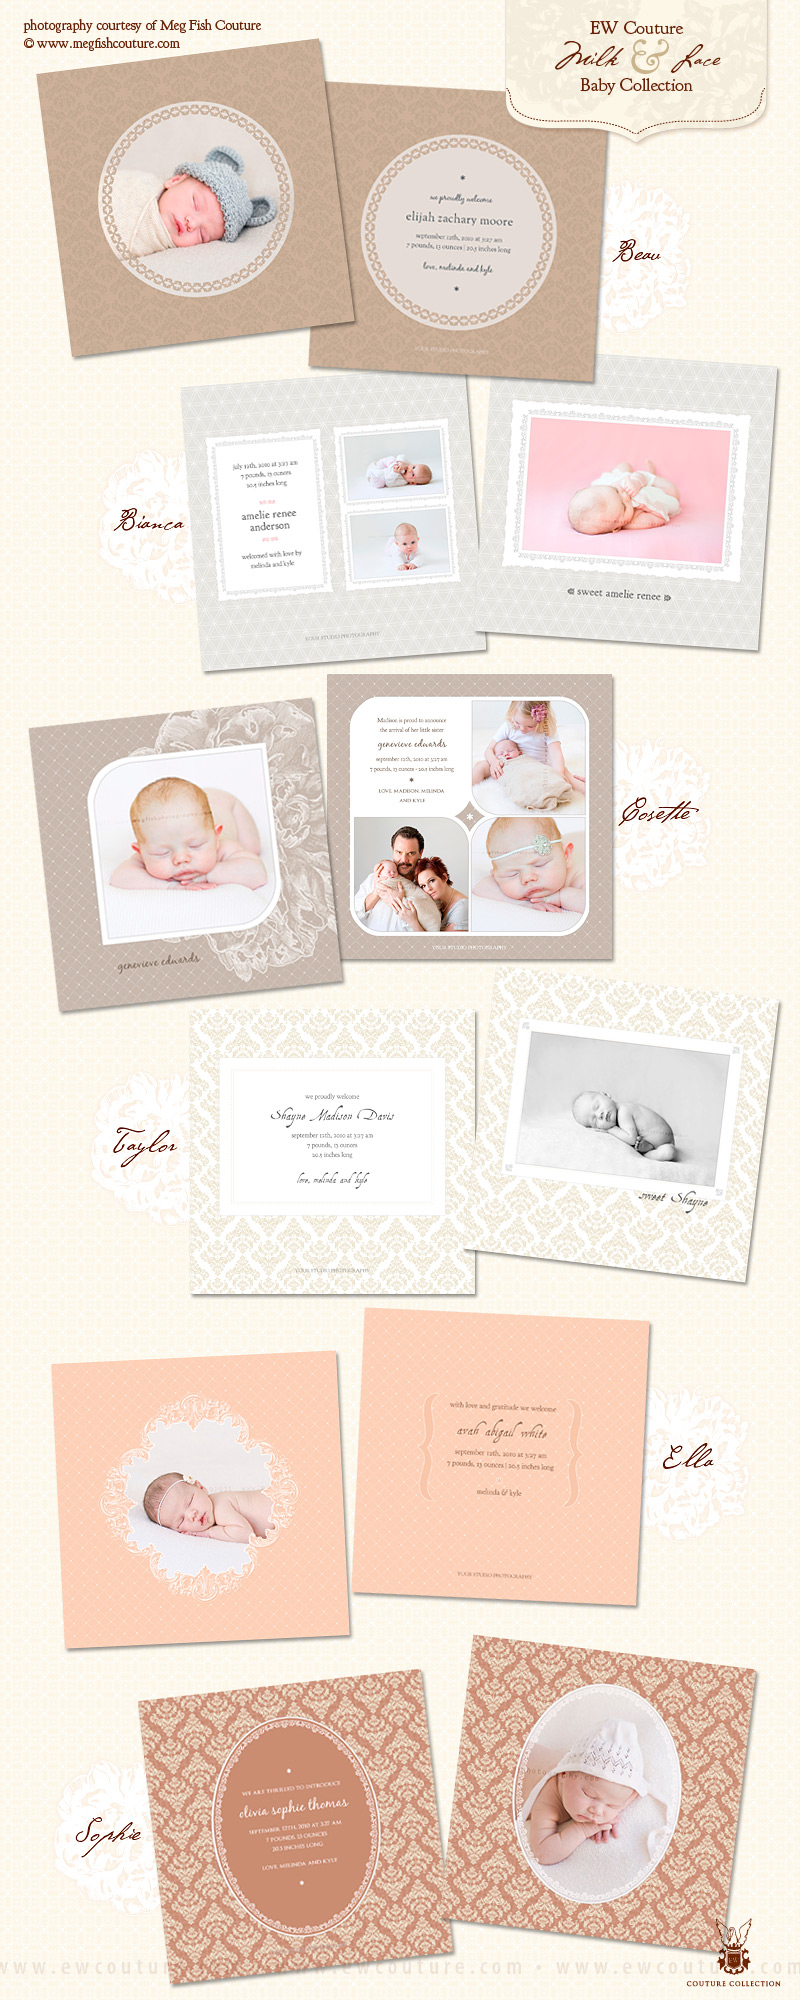 ewcc-MilkandLace-BabyCollection.jpg